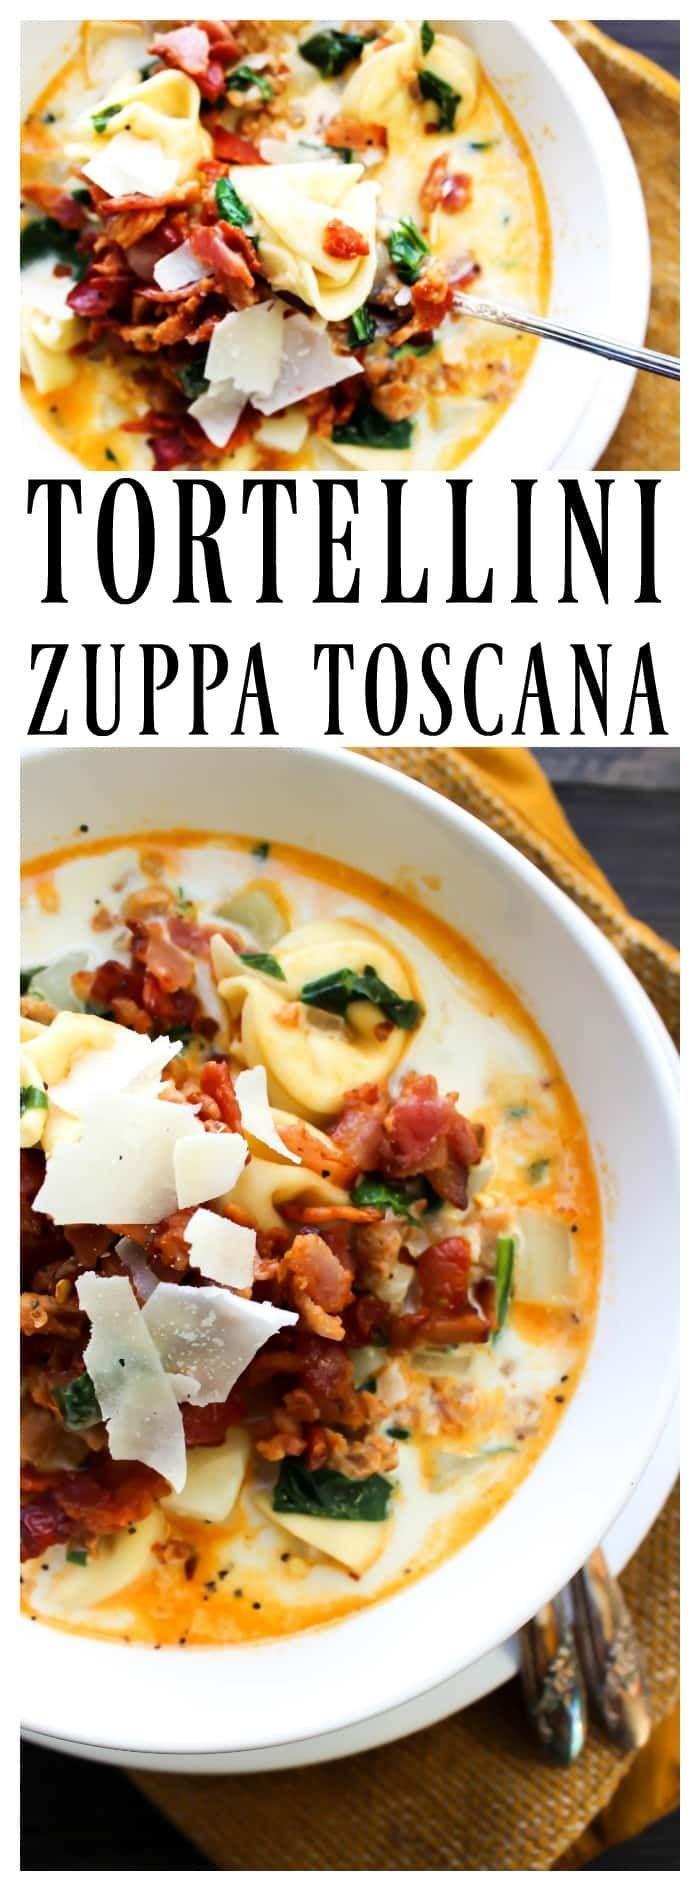 4 slices cooked bacon diced 1 lb. spicy Italian sausage 1 tablespoon olive oil 2 garlic cloves minced 1 small yellow onion diced 4 cups chicken broth 2 medium russet potatoes peeled and diced 2 cups baby spinach 2 cups heavy cream 9 ounce package three-cheese tortellini